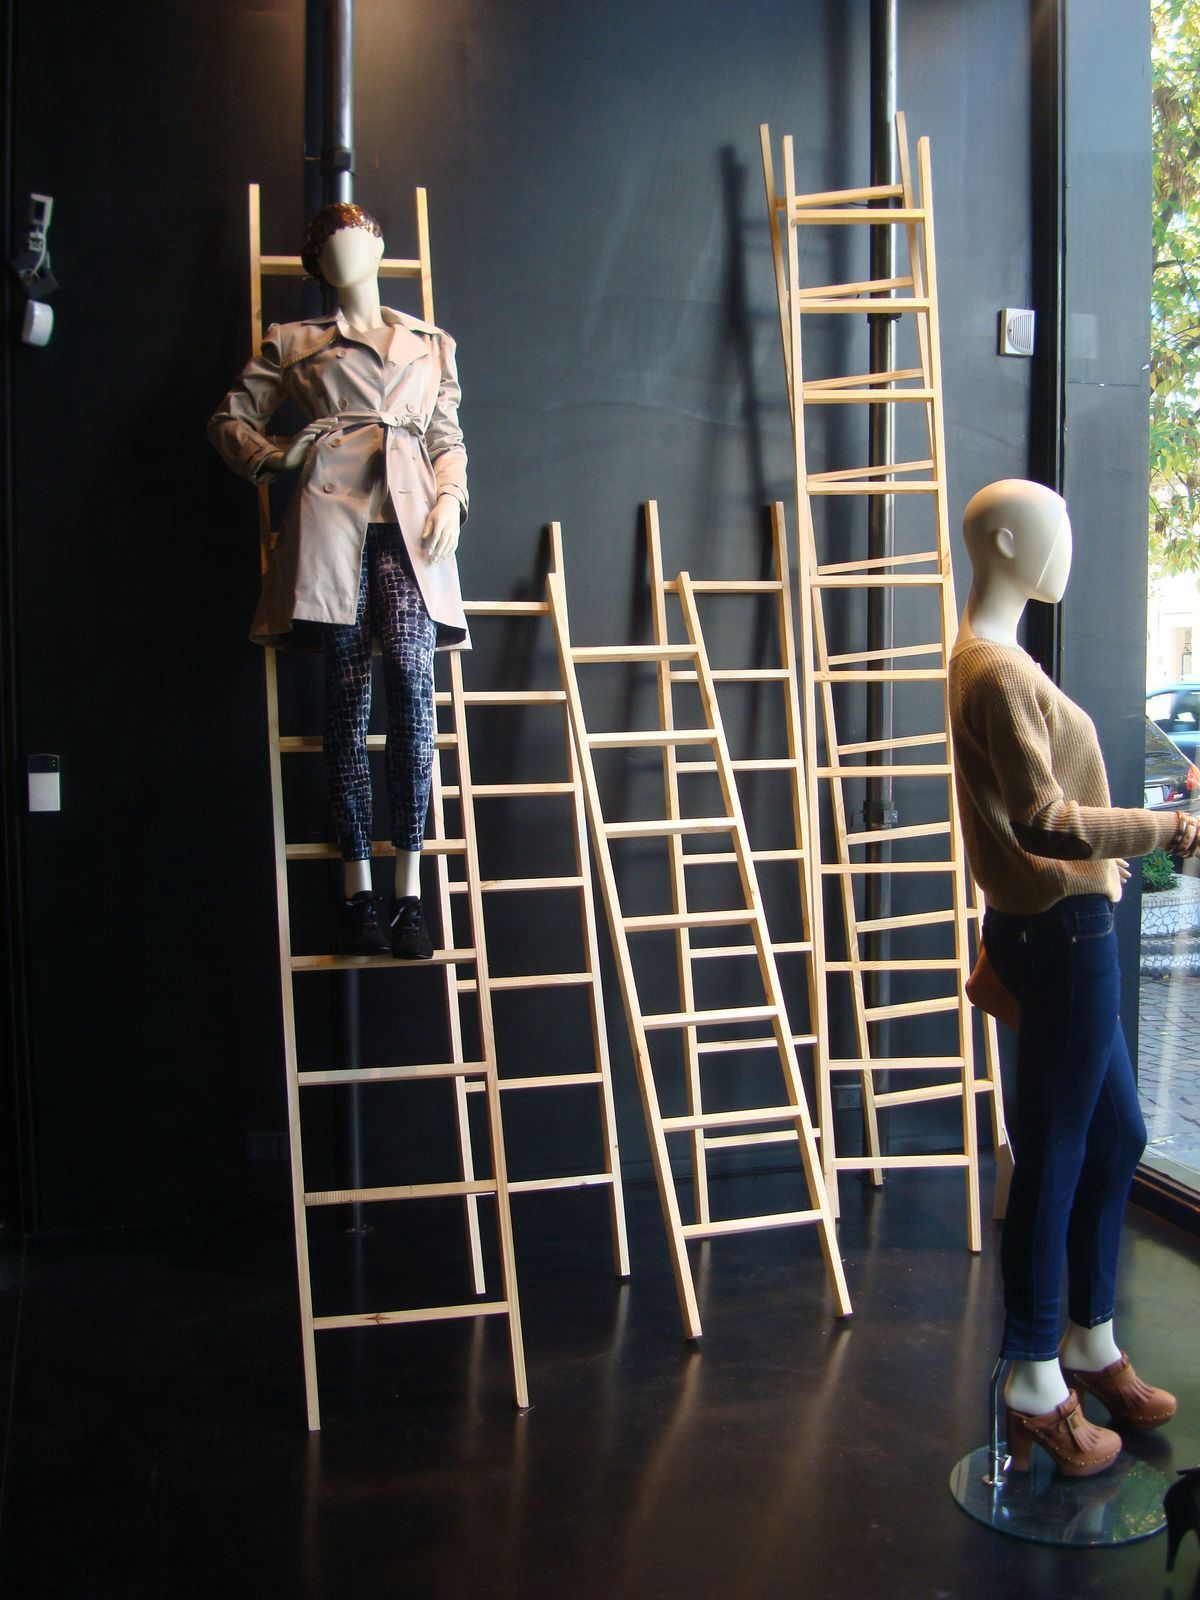 Great display using just simple ladders